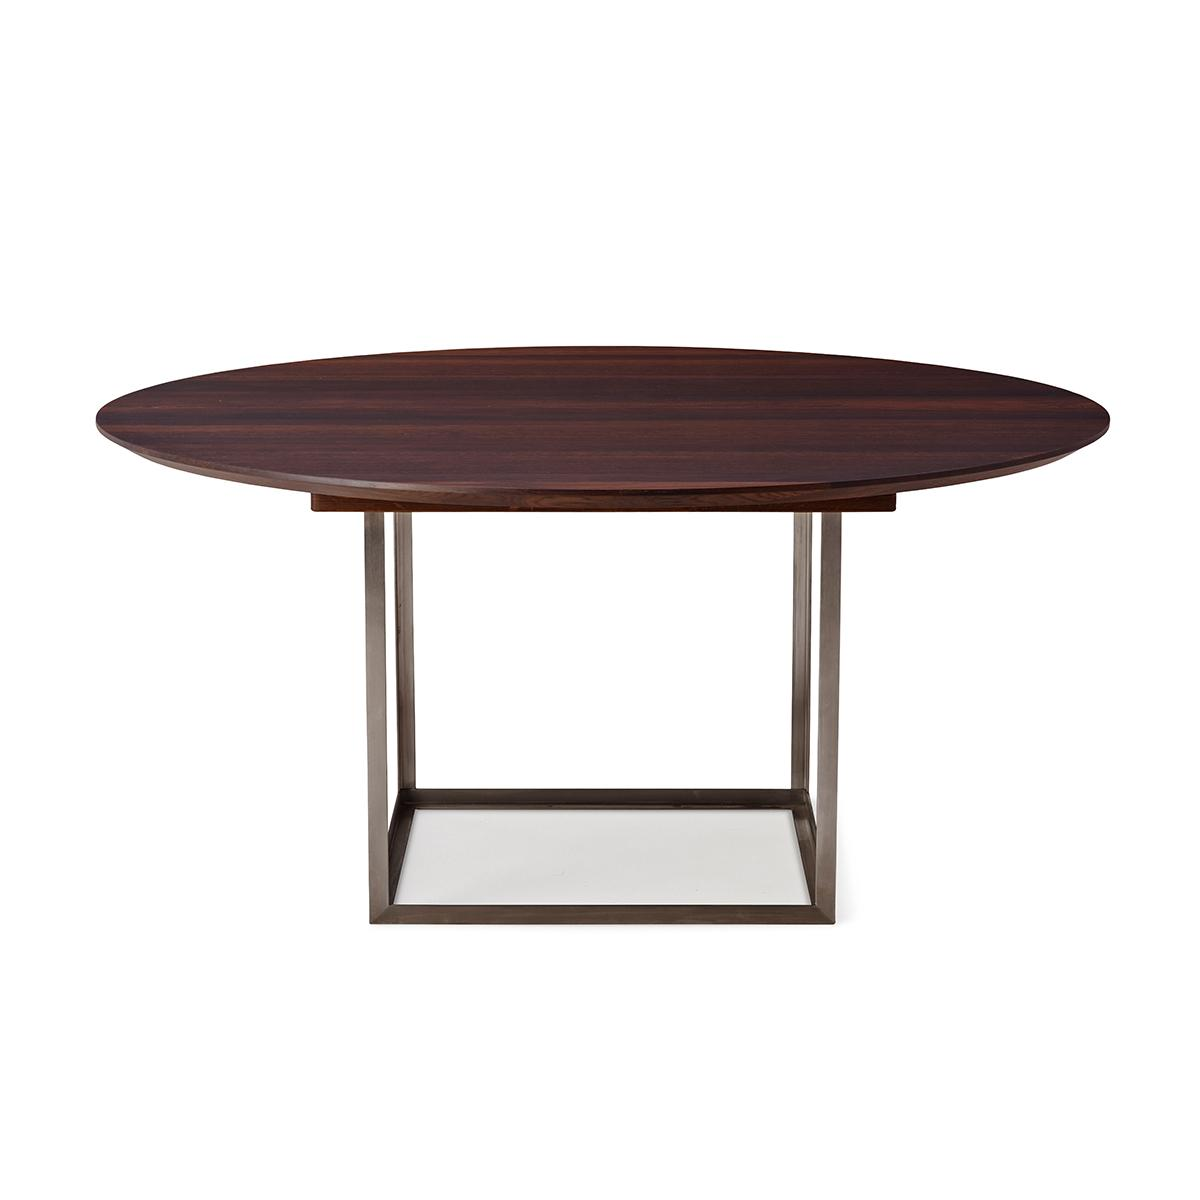 Jewel-Table-Round-Walnut-Stainless-Table-LR